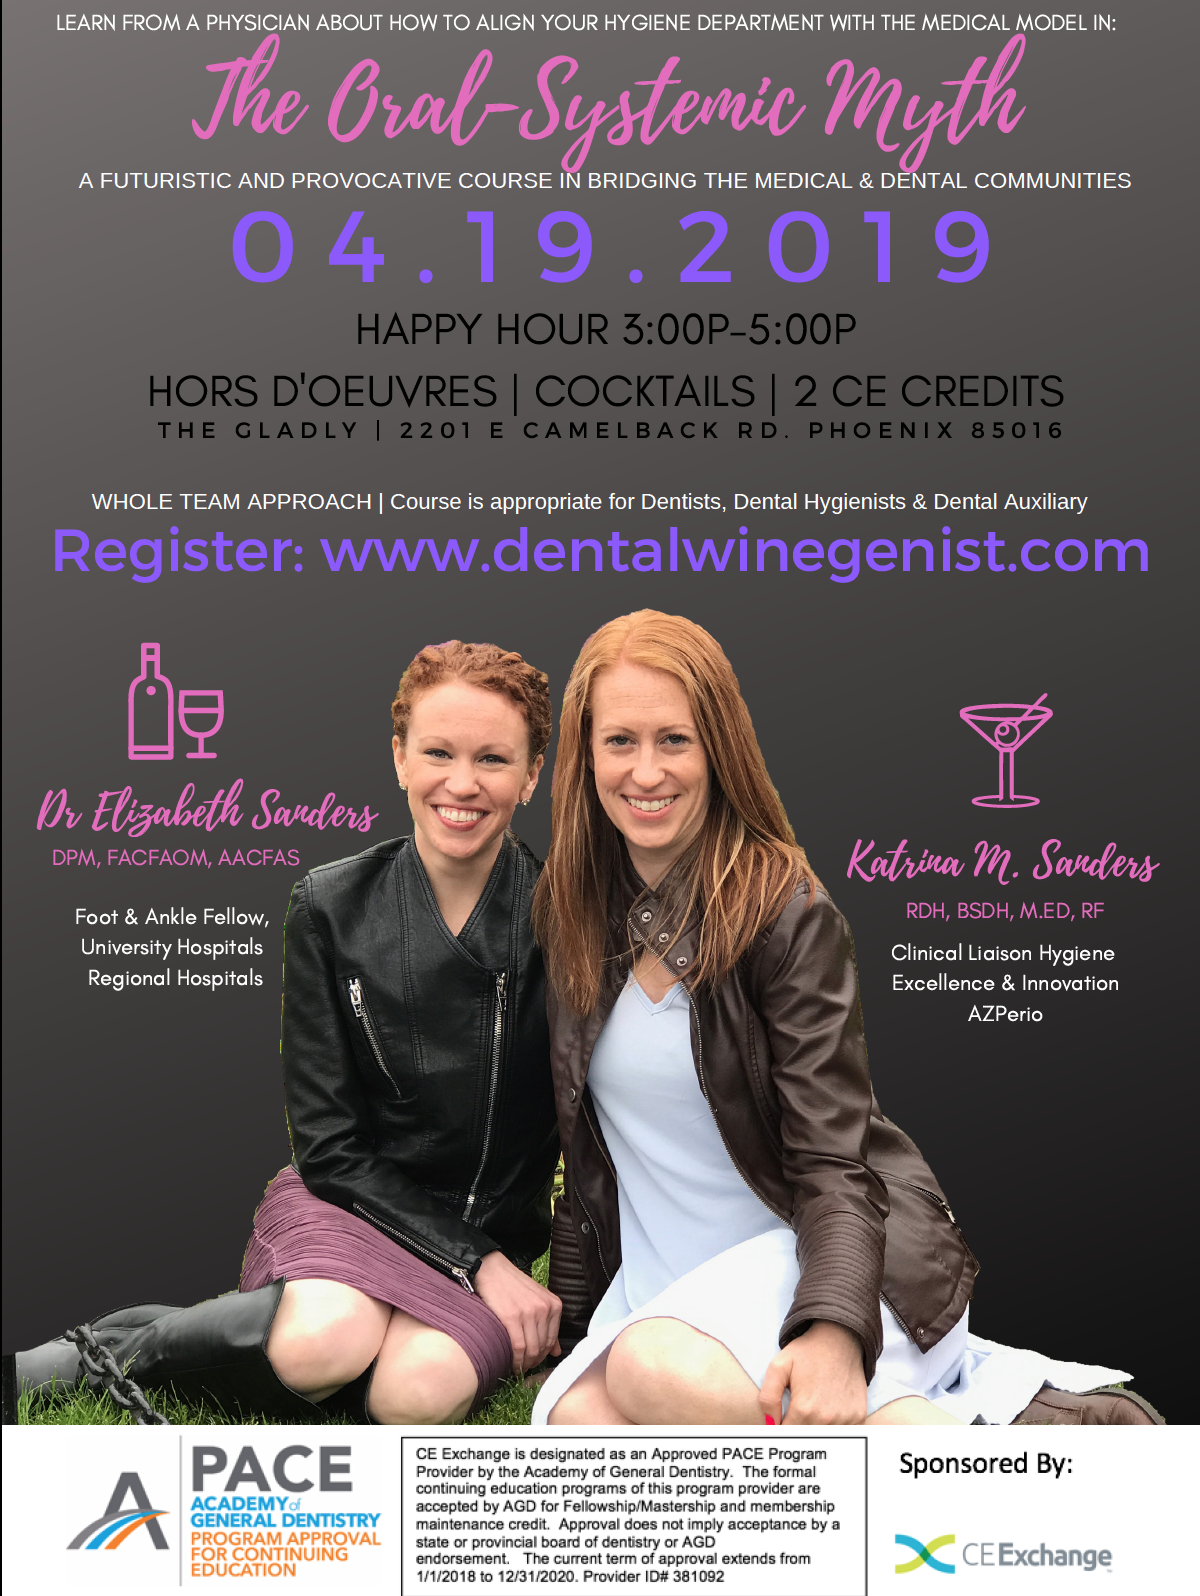 Dental Winegenist CE course by Katrina Sanders